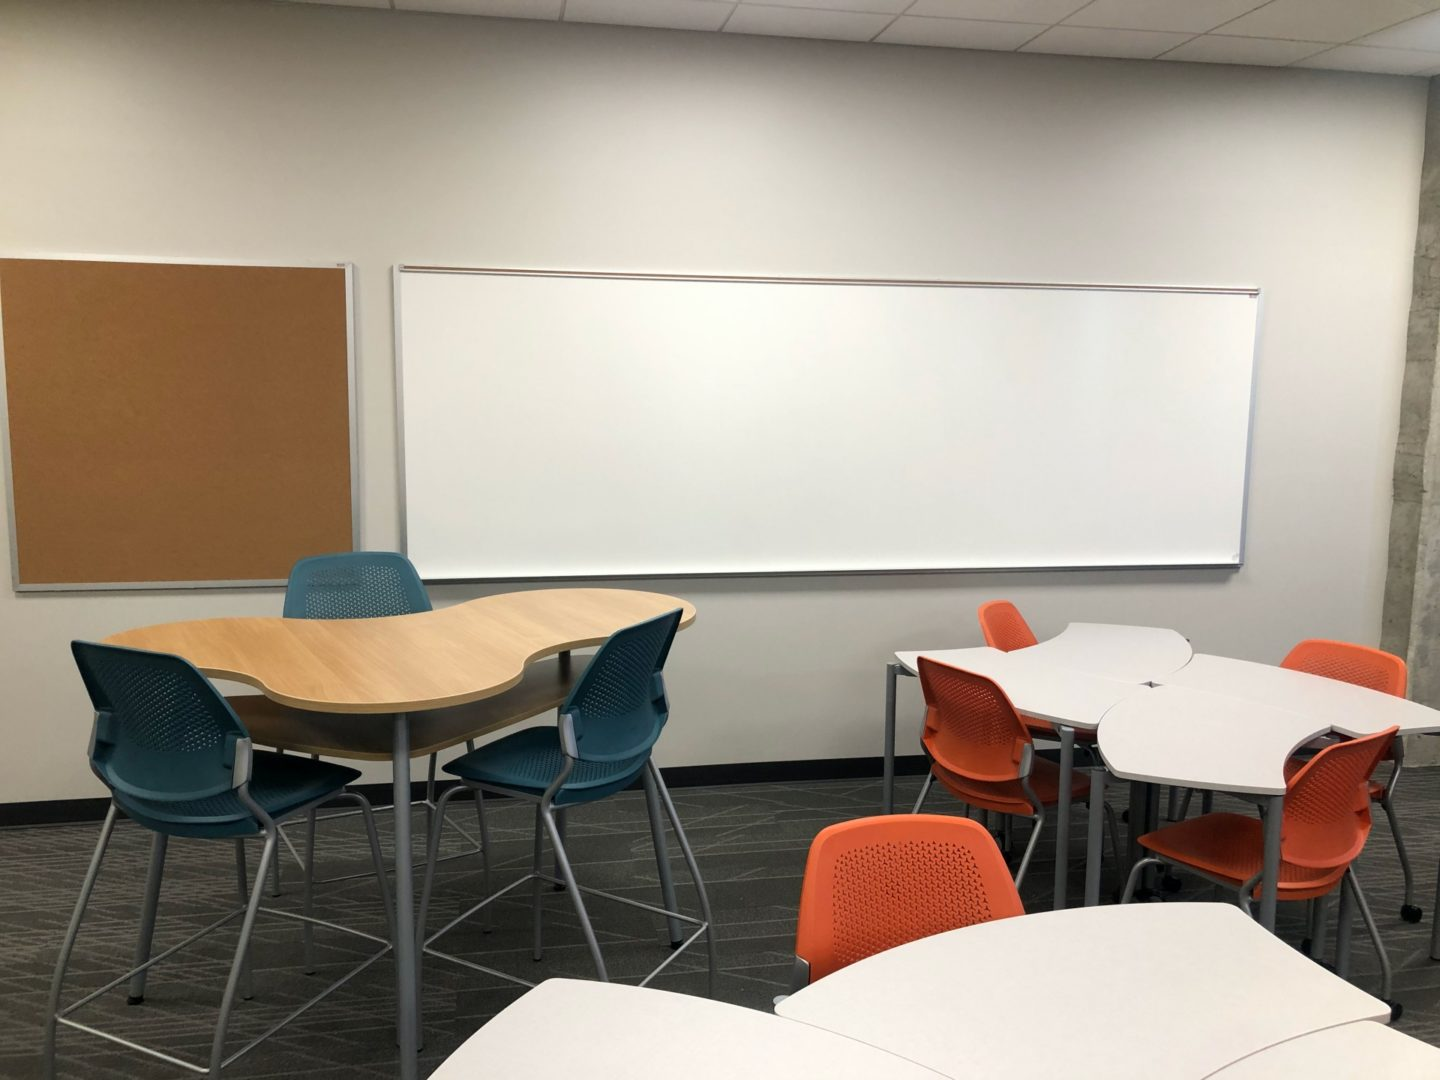 classroom with whiteboard, tables, and chairs